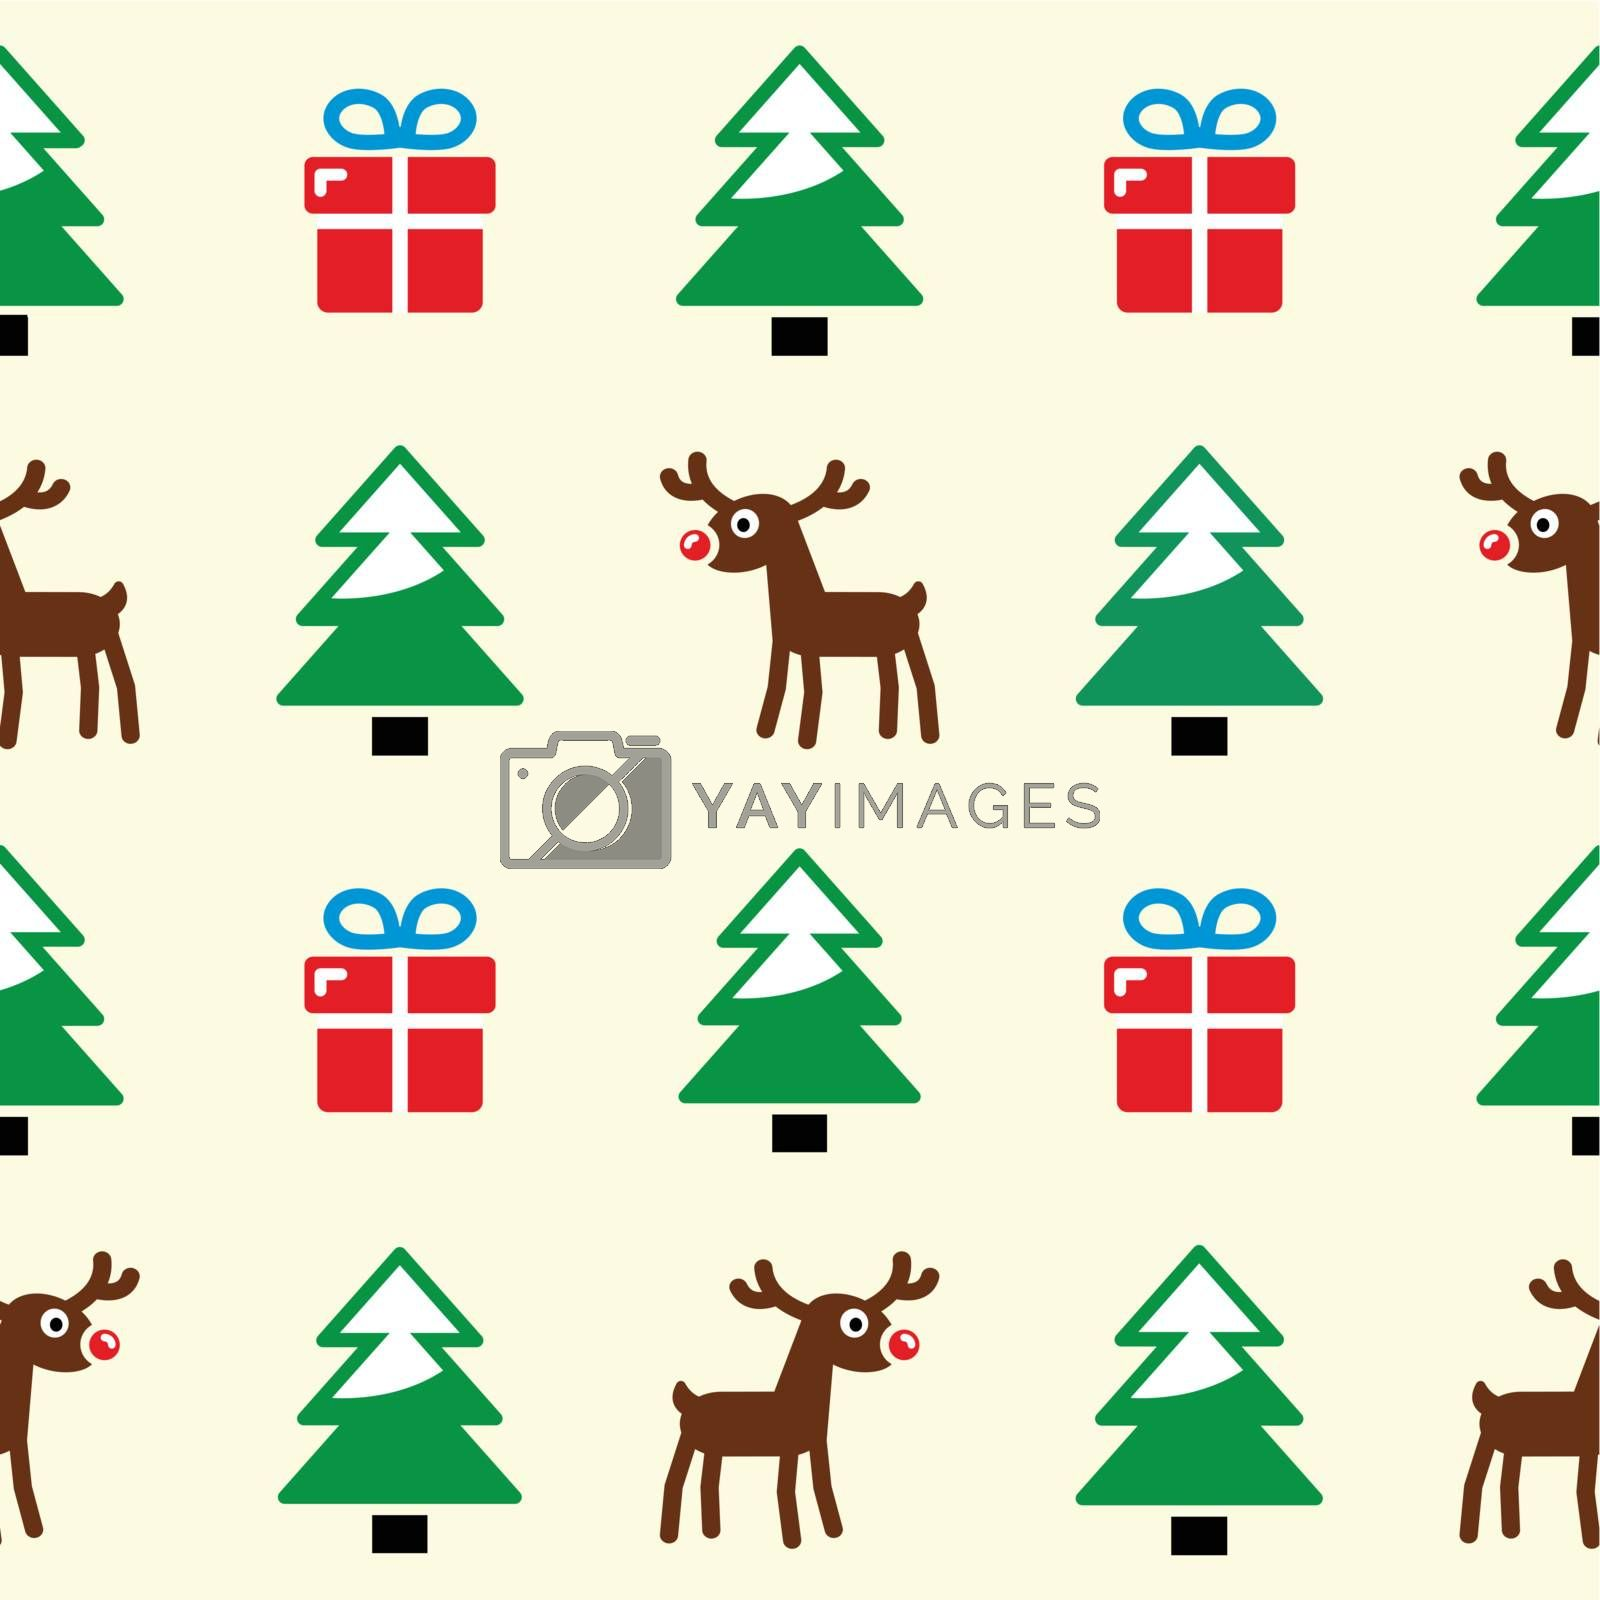 Xmas, winter pattern with presents, reindeer and christmas trees